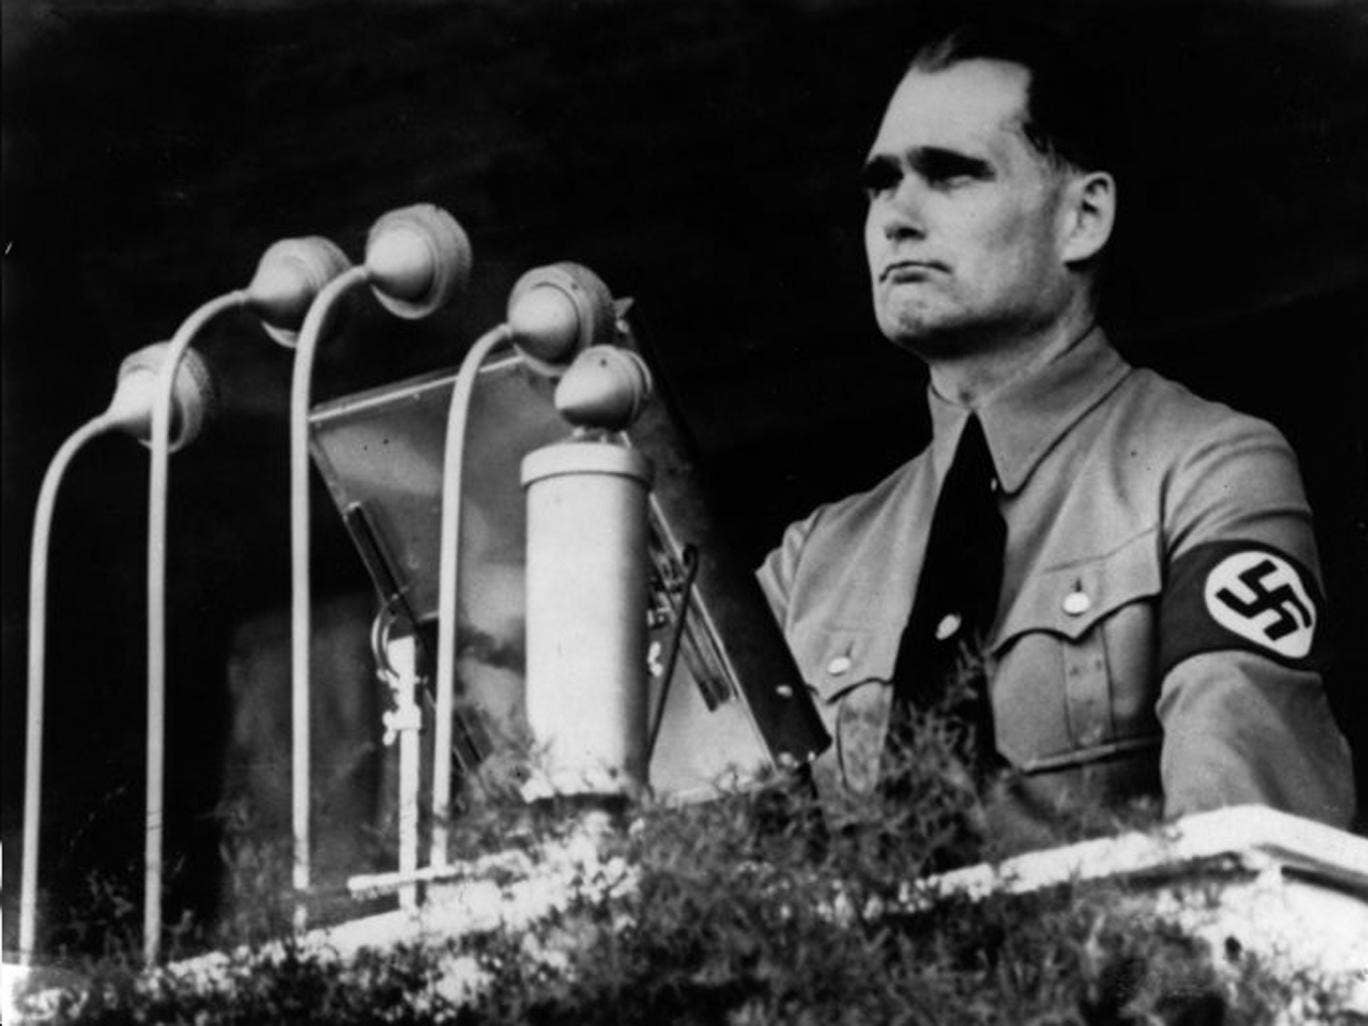 Spymaster: The former head of MI6, Sir Maurice Oldfield, is thought to have passed on letters by Rudolf Hess, far right